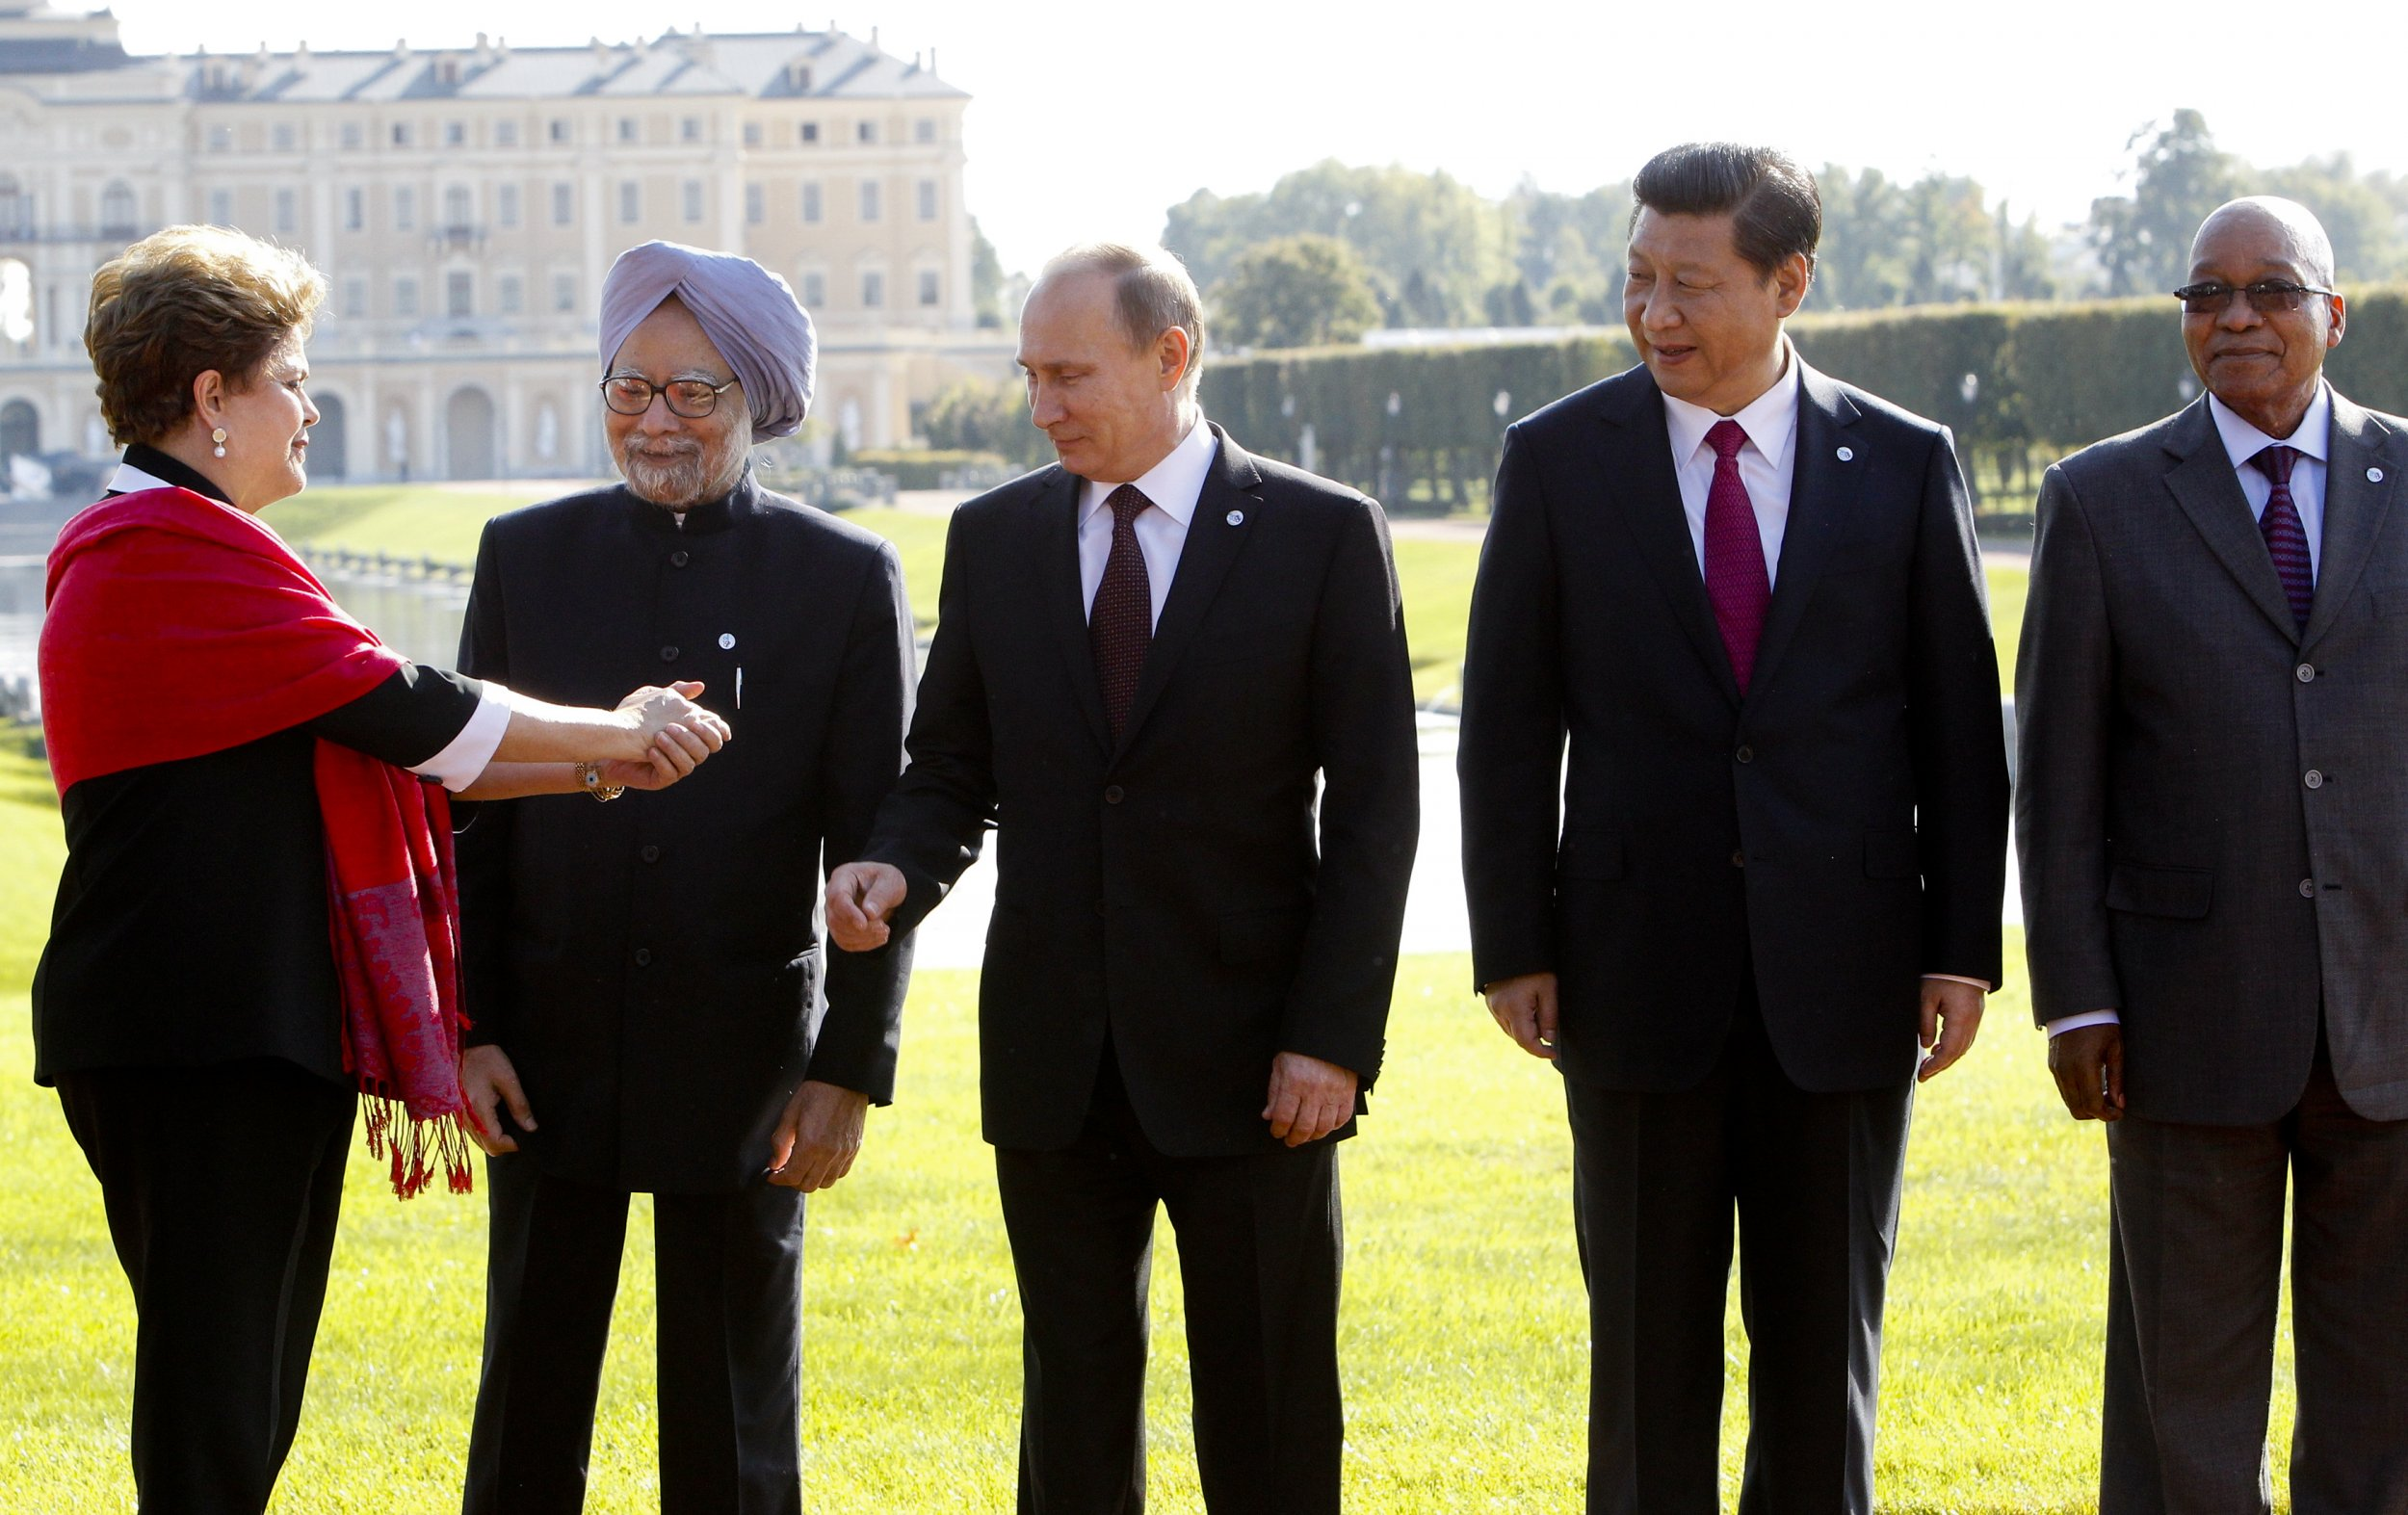 BRICS leaders near St. Petersburg